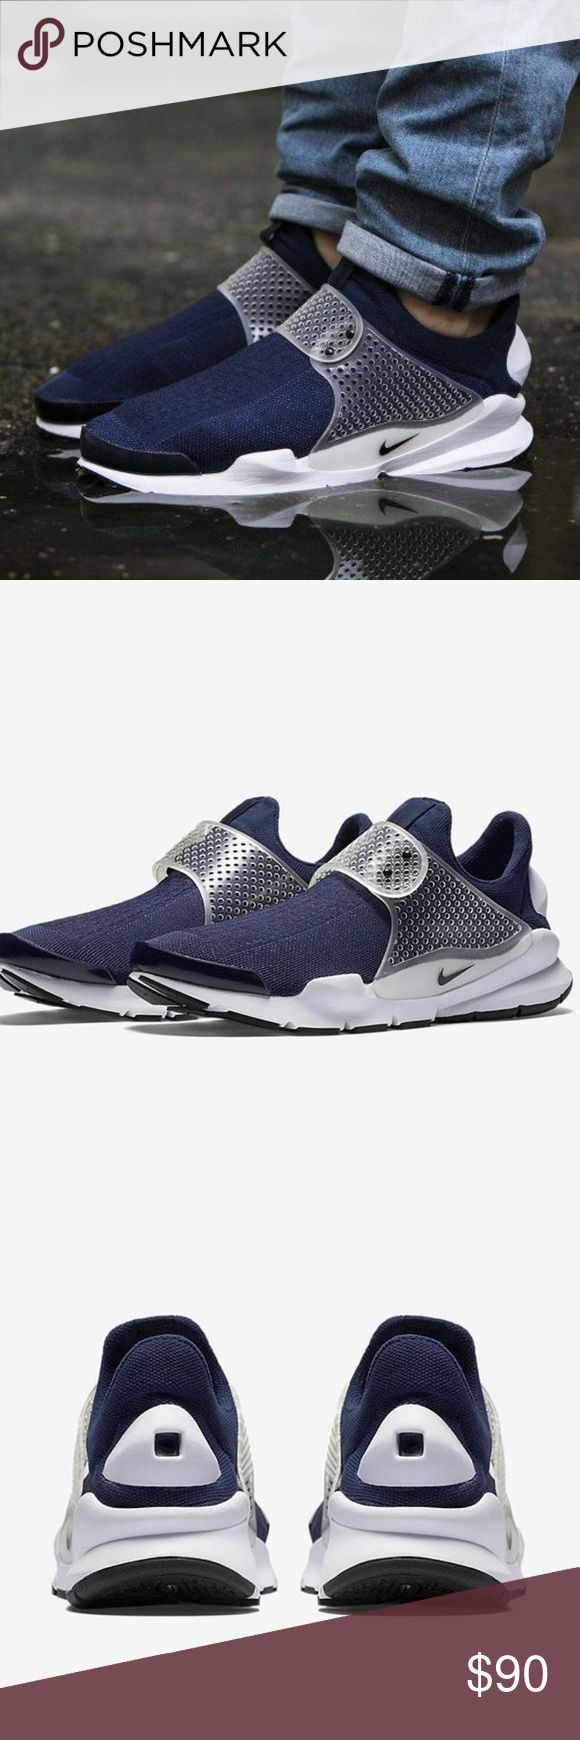 NIB * SOCK DART Men's Running Shoes The Nike Sock Dart Unisex Shoe knocks your socks off with a soft upper that surrounds your foot in comfort and just enough structure to add stability.  SECURE, SOCK-LIKE FIT  Flexible, breathable mesh helps keep your feet cool and comfortable, while the molded midfoot strap with adjustable closure  povides a personalized fit.  SOFT CUSHIONING Full-length Phylon foam underneath your foot offers lasting, cushioned comfort.  Rubber outsole for durability Flex…